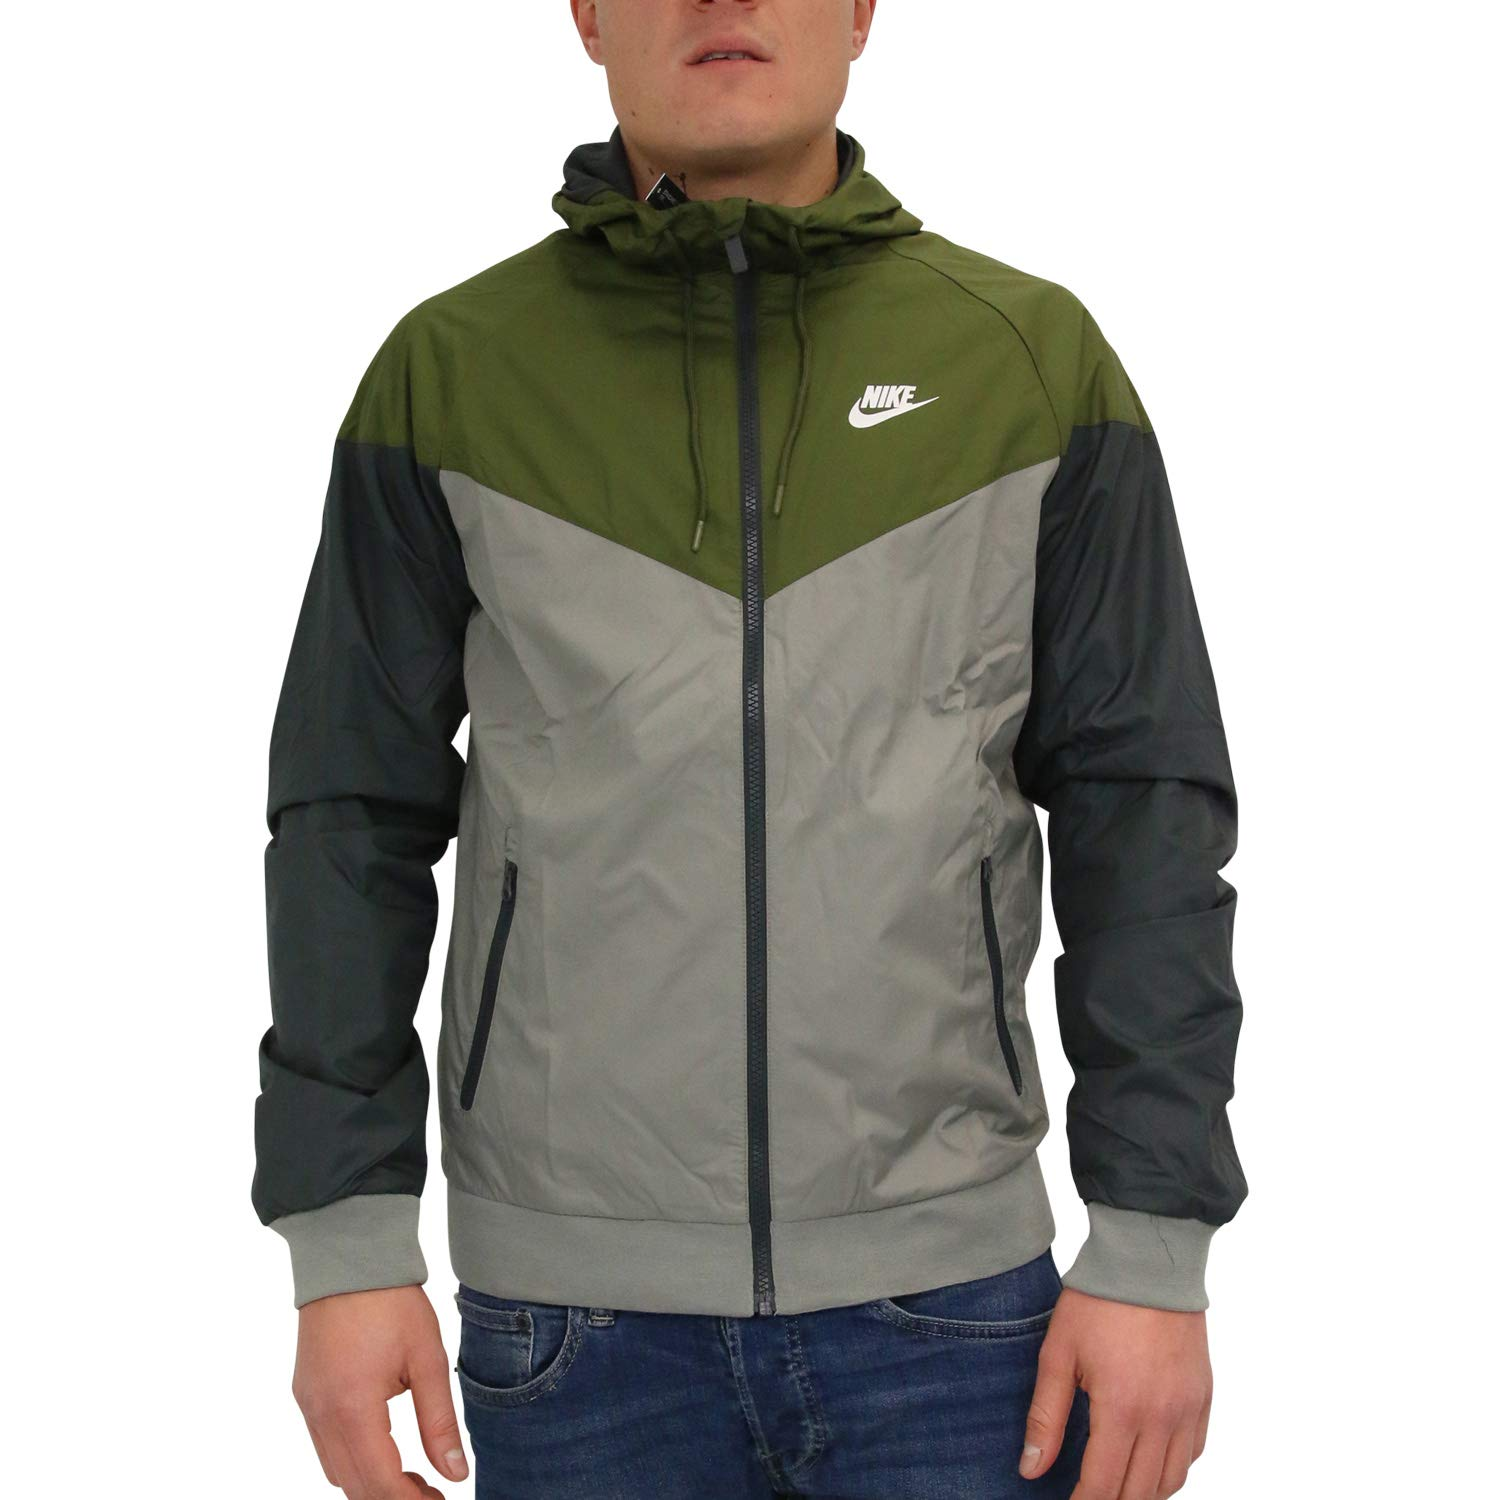 Galleon - Nike Mens Windrunner Hooded Track Jacket Olive Canvas Dark Stucco White  727324-395 Size Small 13f4507a0